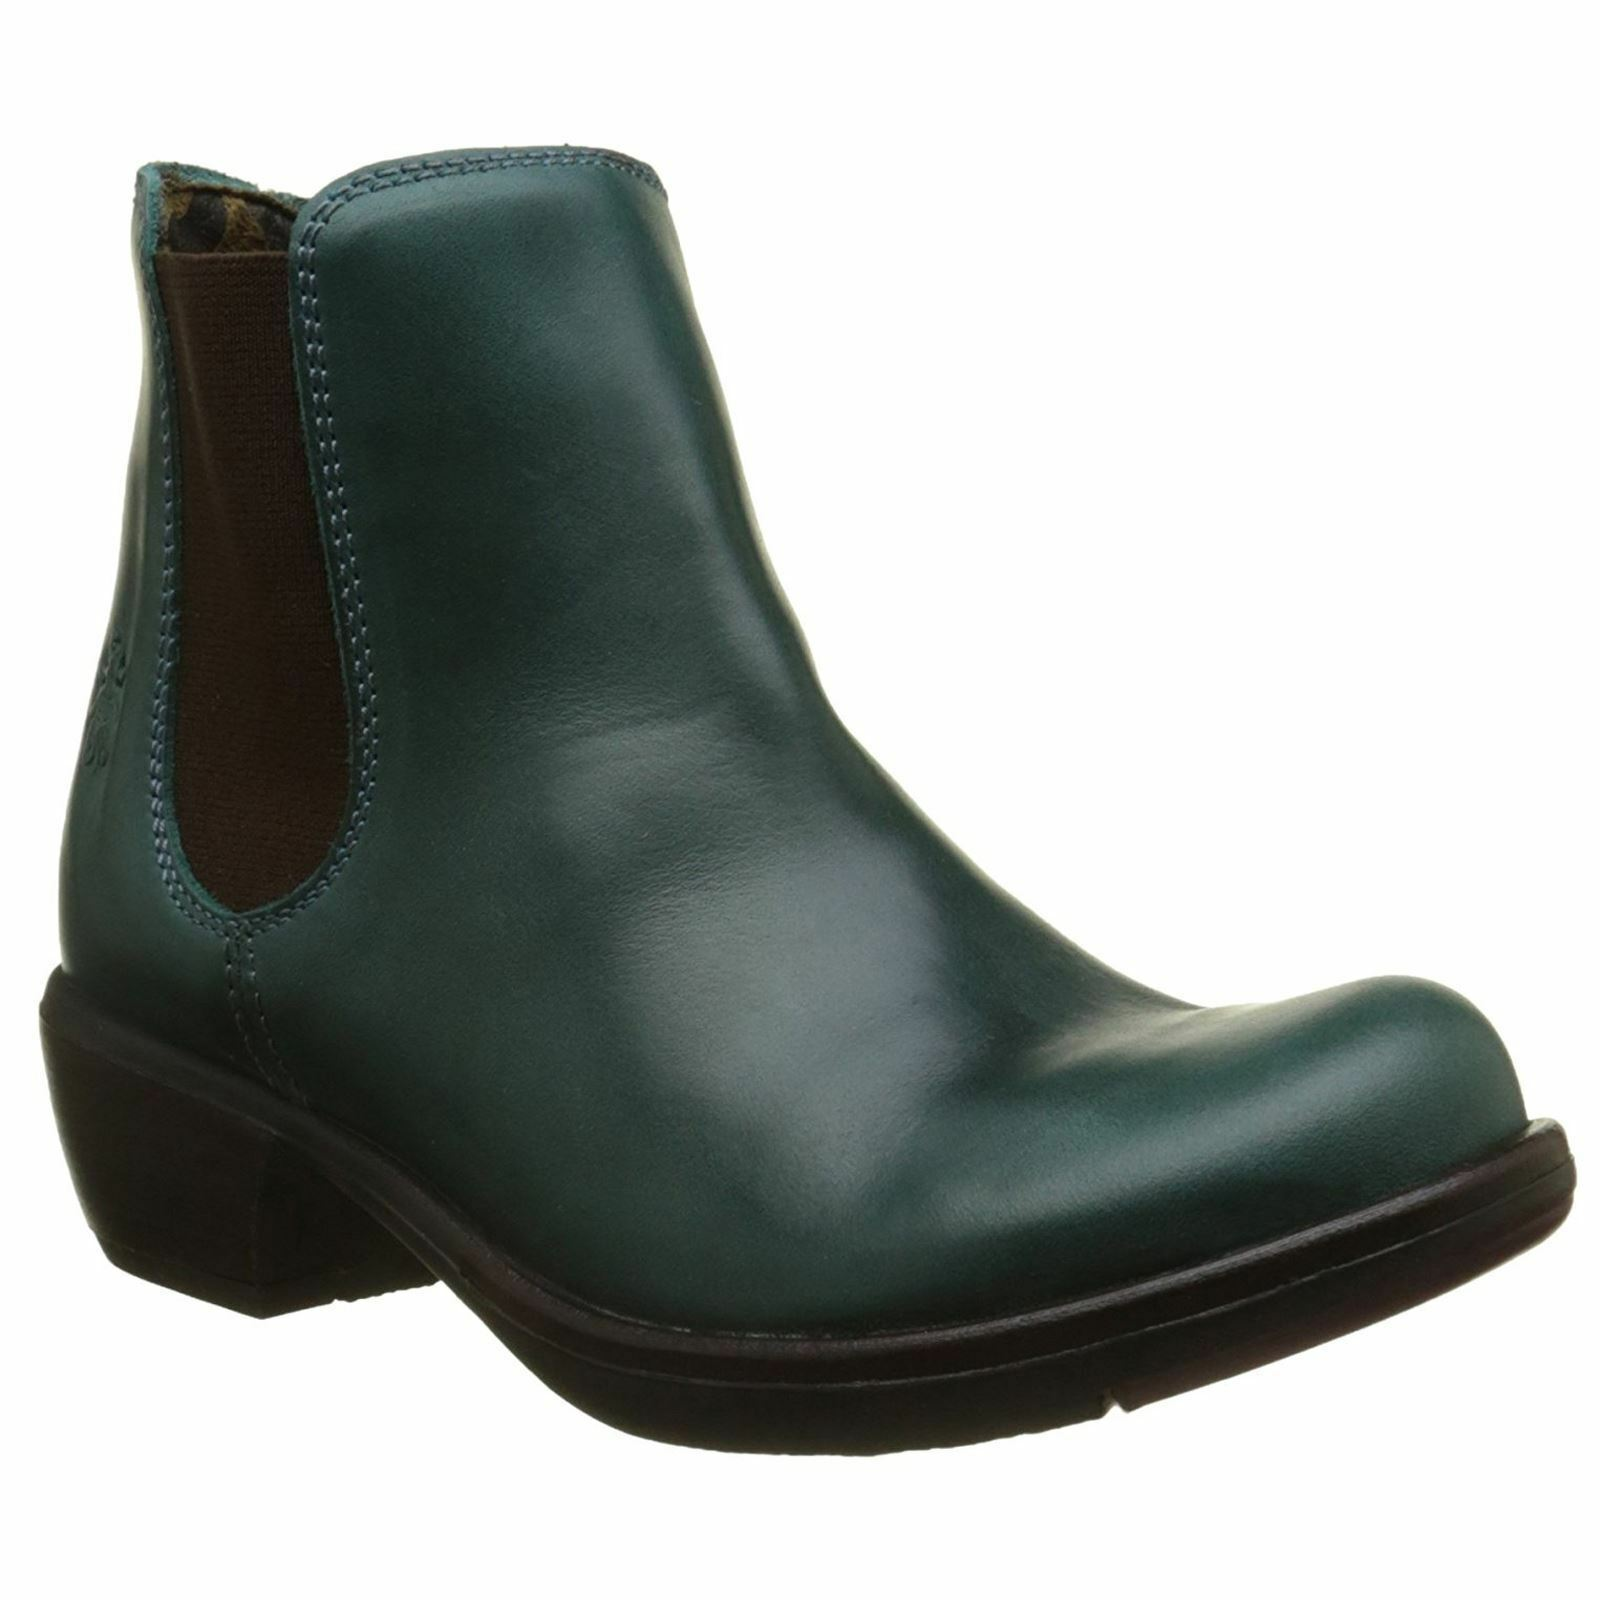 FLY LONDON MAKE PETROL GREEN GREEN GREEN LEATHER CHELSEA ANKLE Stiefel UK 4 EUR 37 9713c0